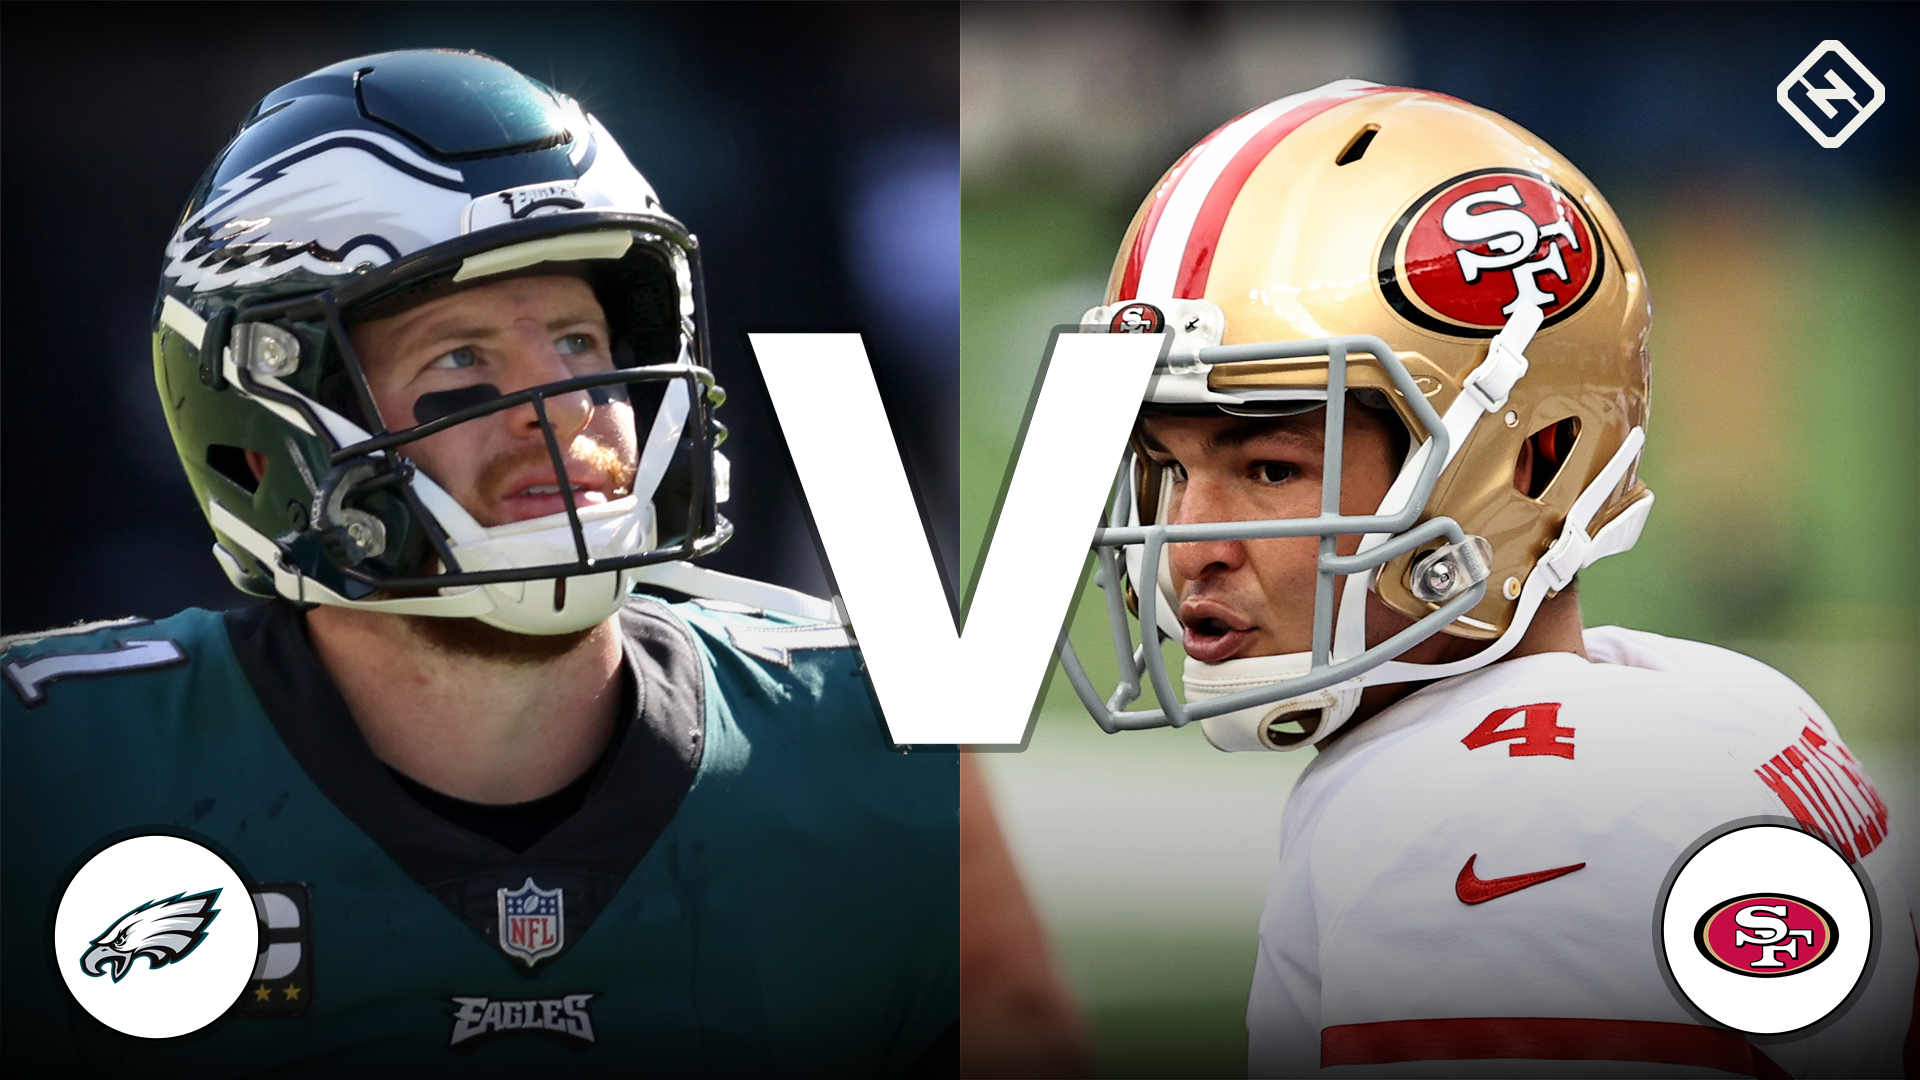 49ers vs. Eagles live score, updates, highlights from NFL's 'Sunday Night Football' game 1